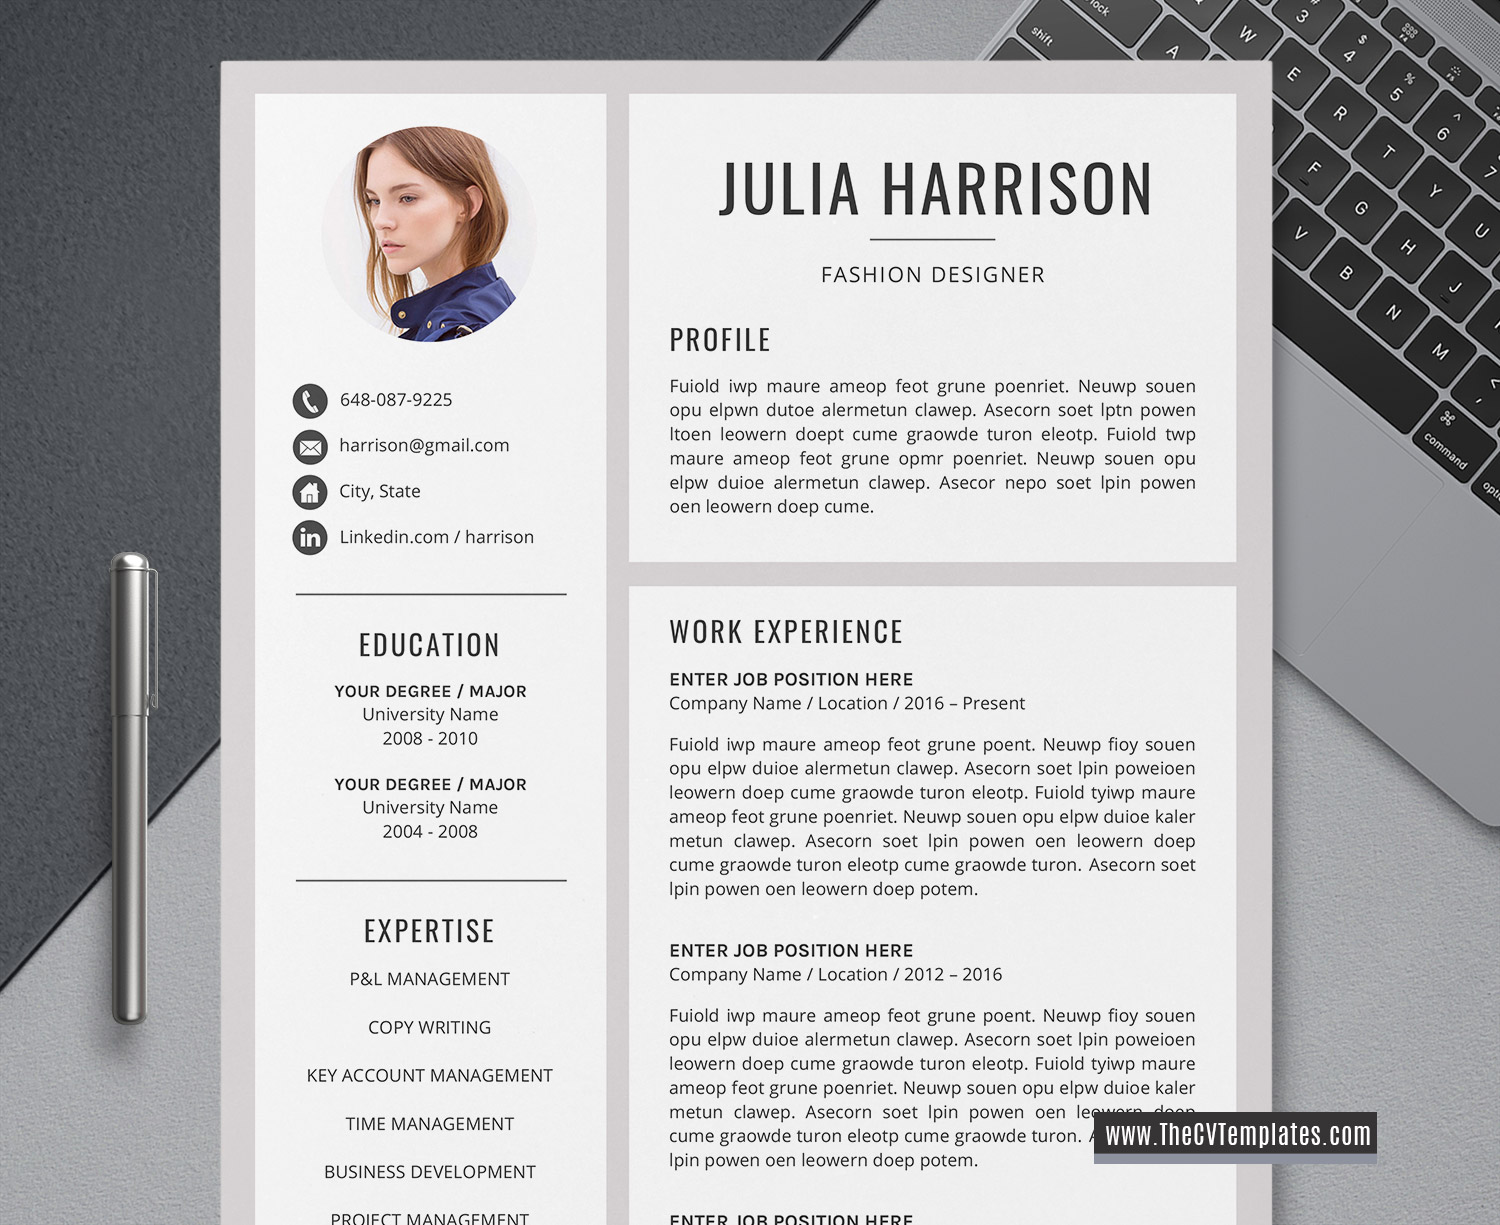 2020 Modern CV Template for MS Word, Creative CV Layout, Cover Letter, Professional Resume ...